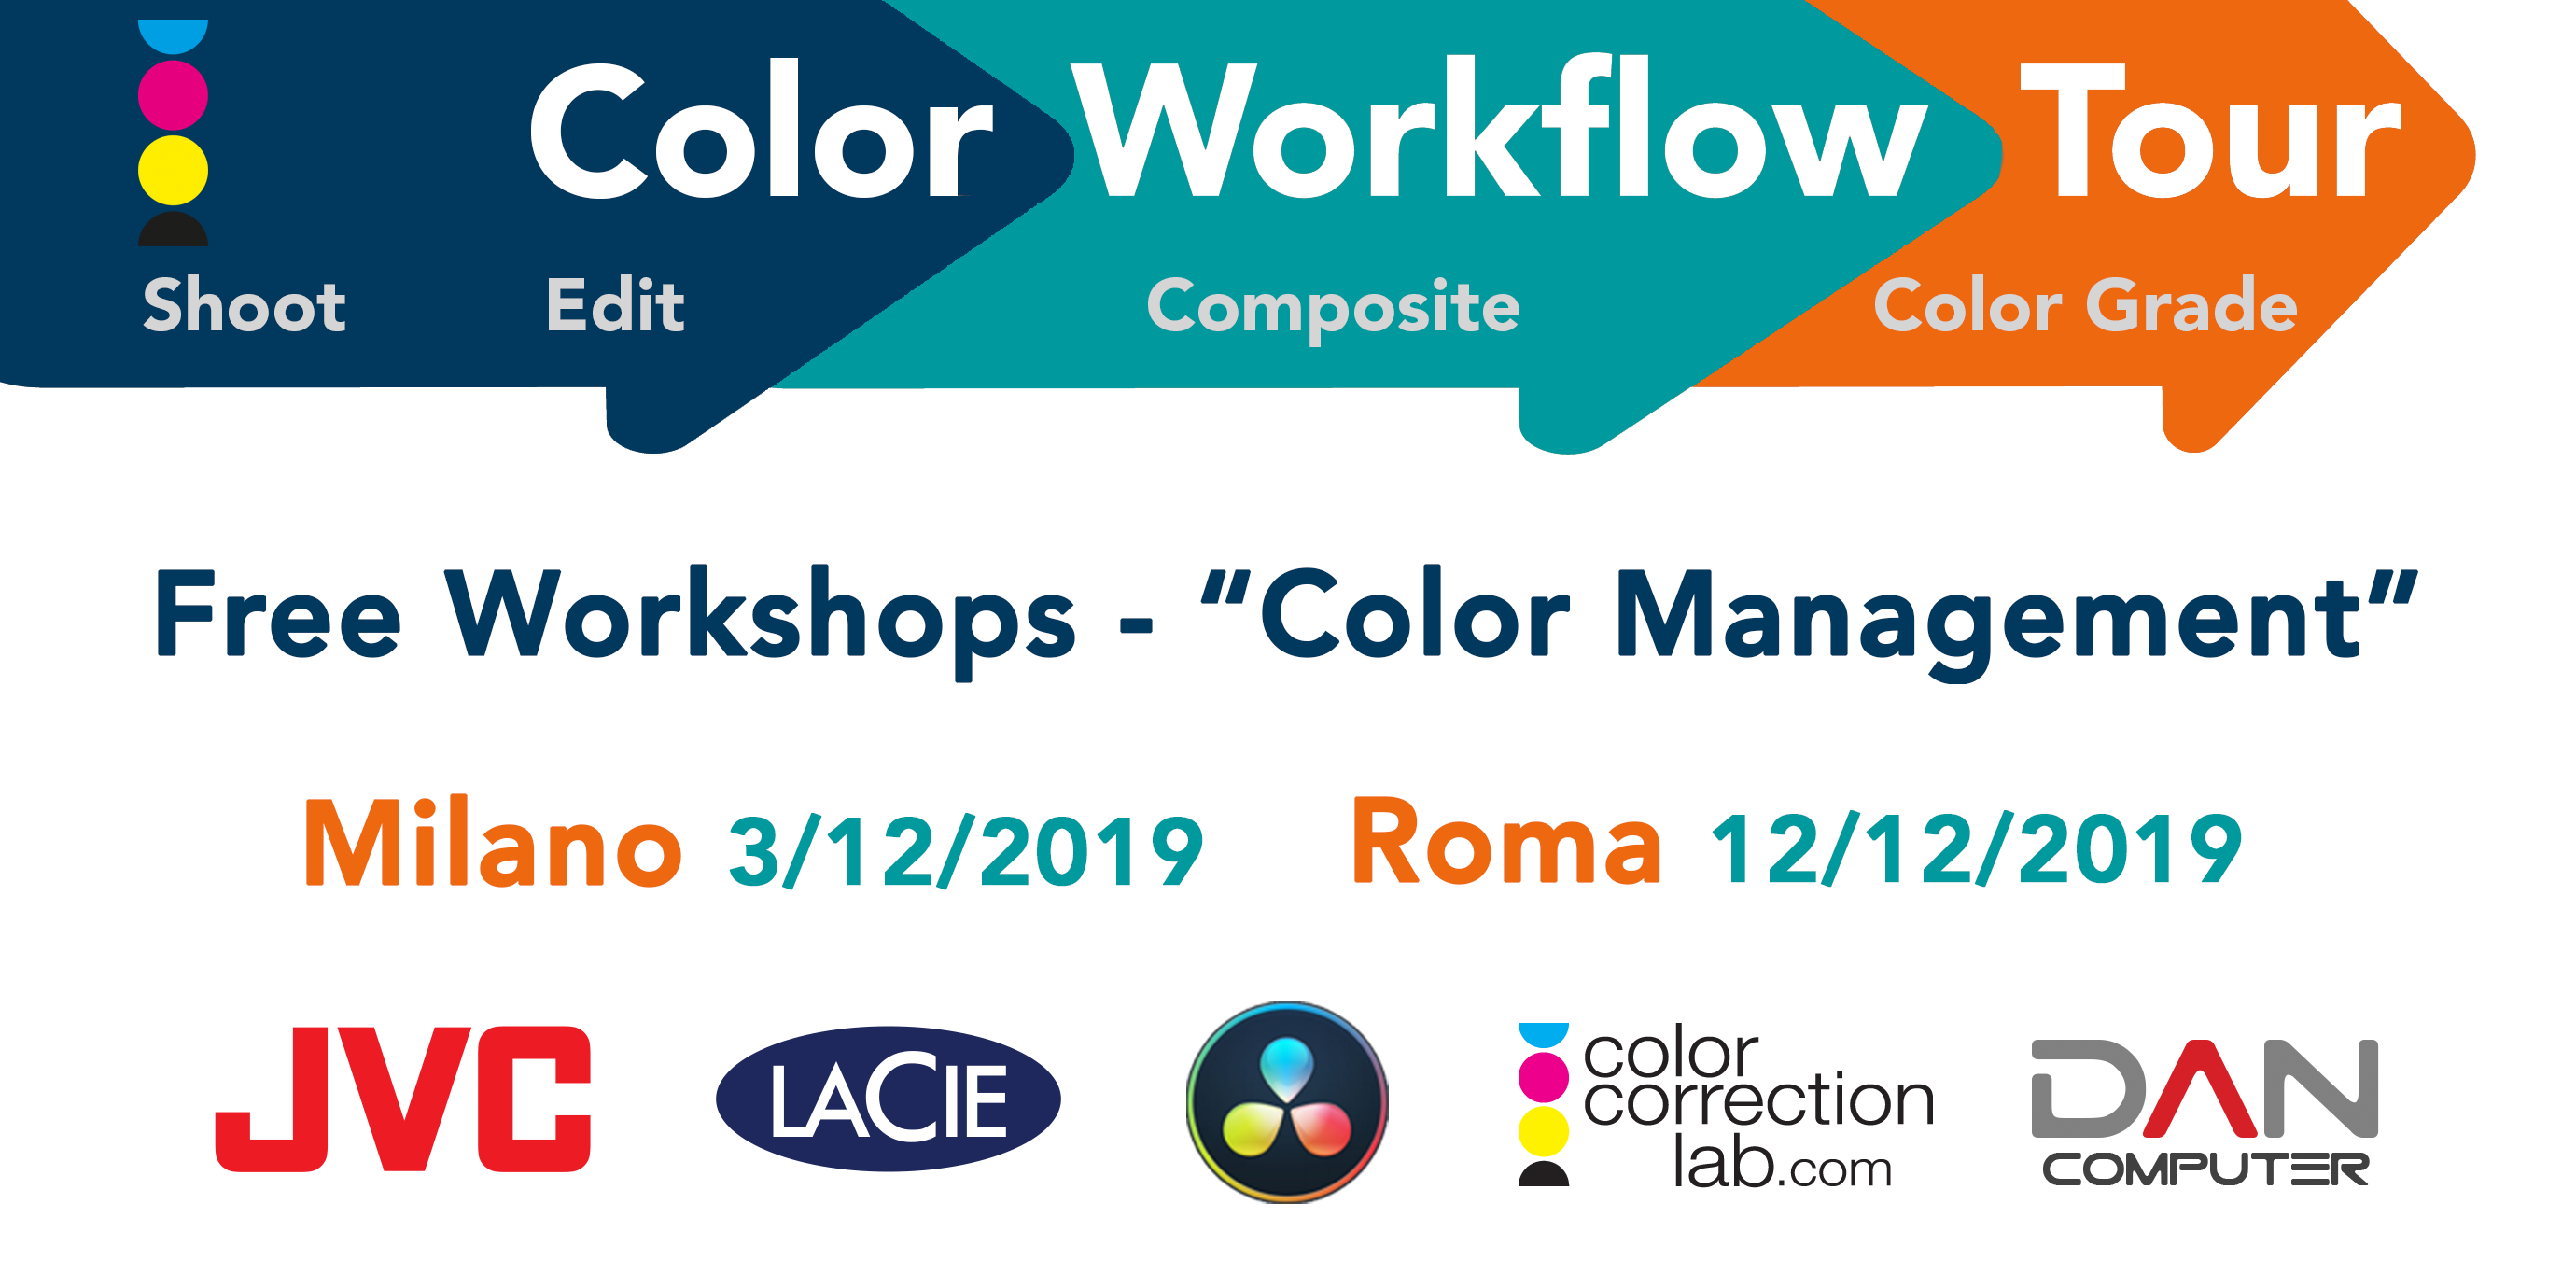 Color Workflow Tour 2019